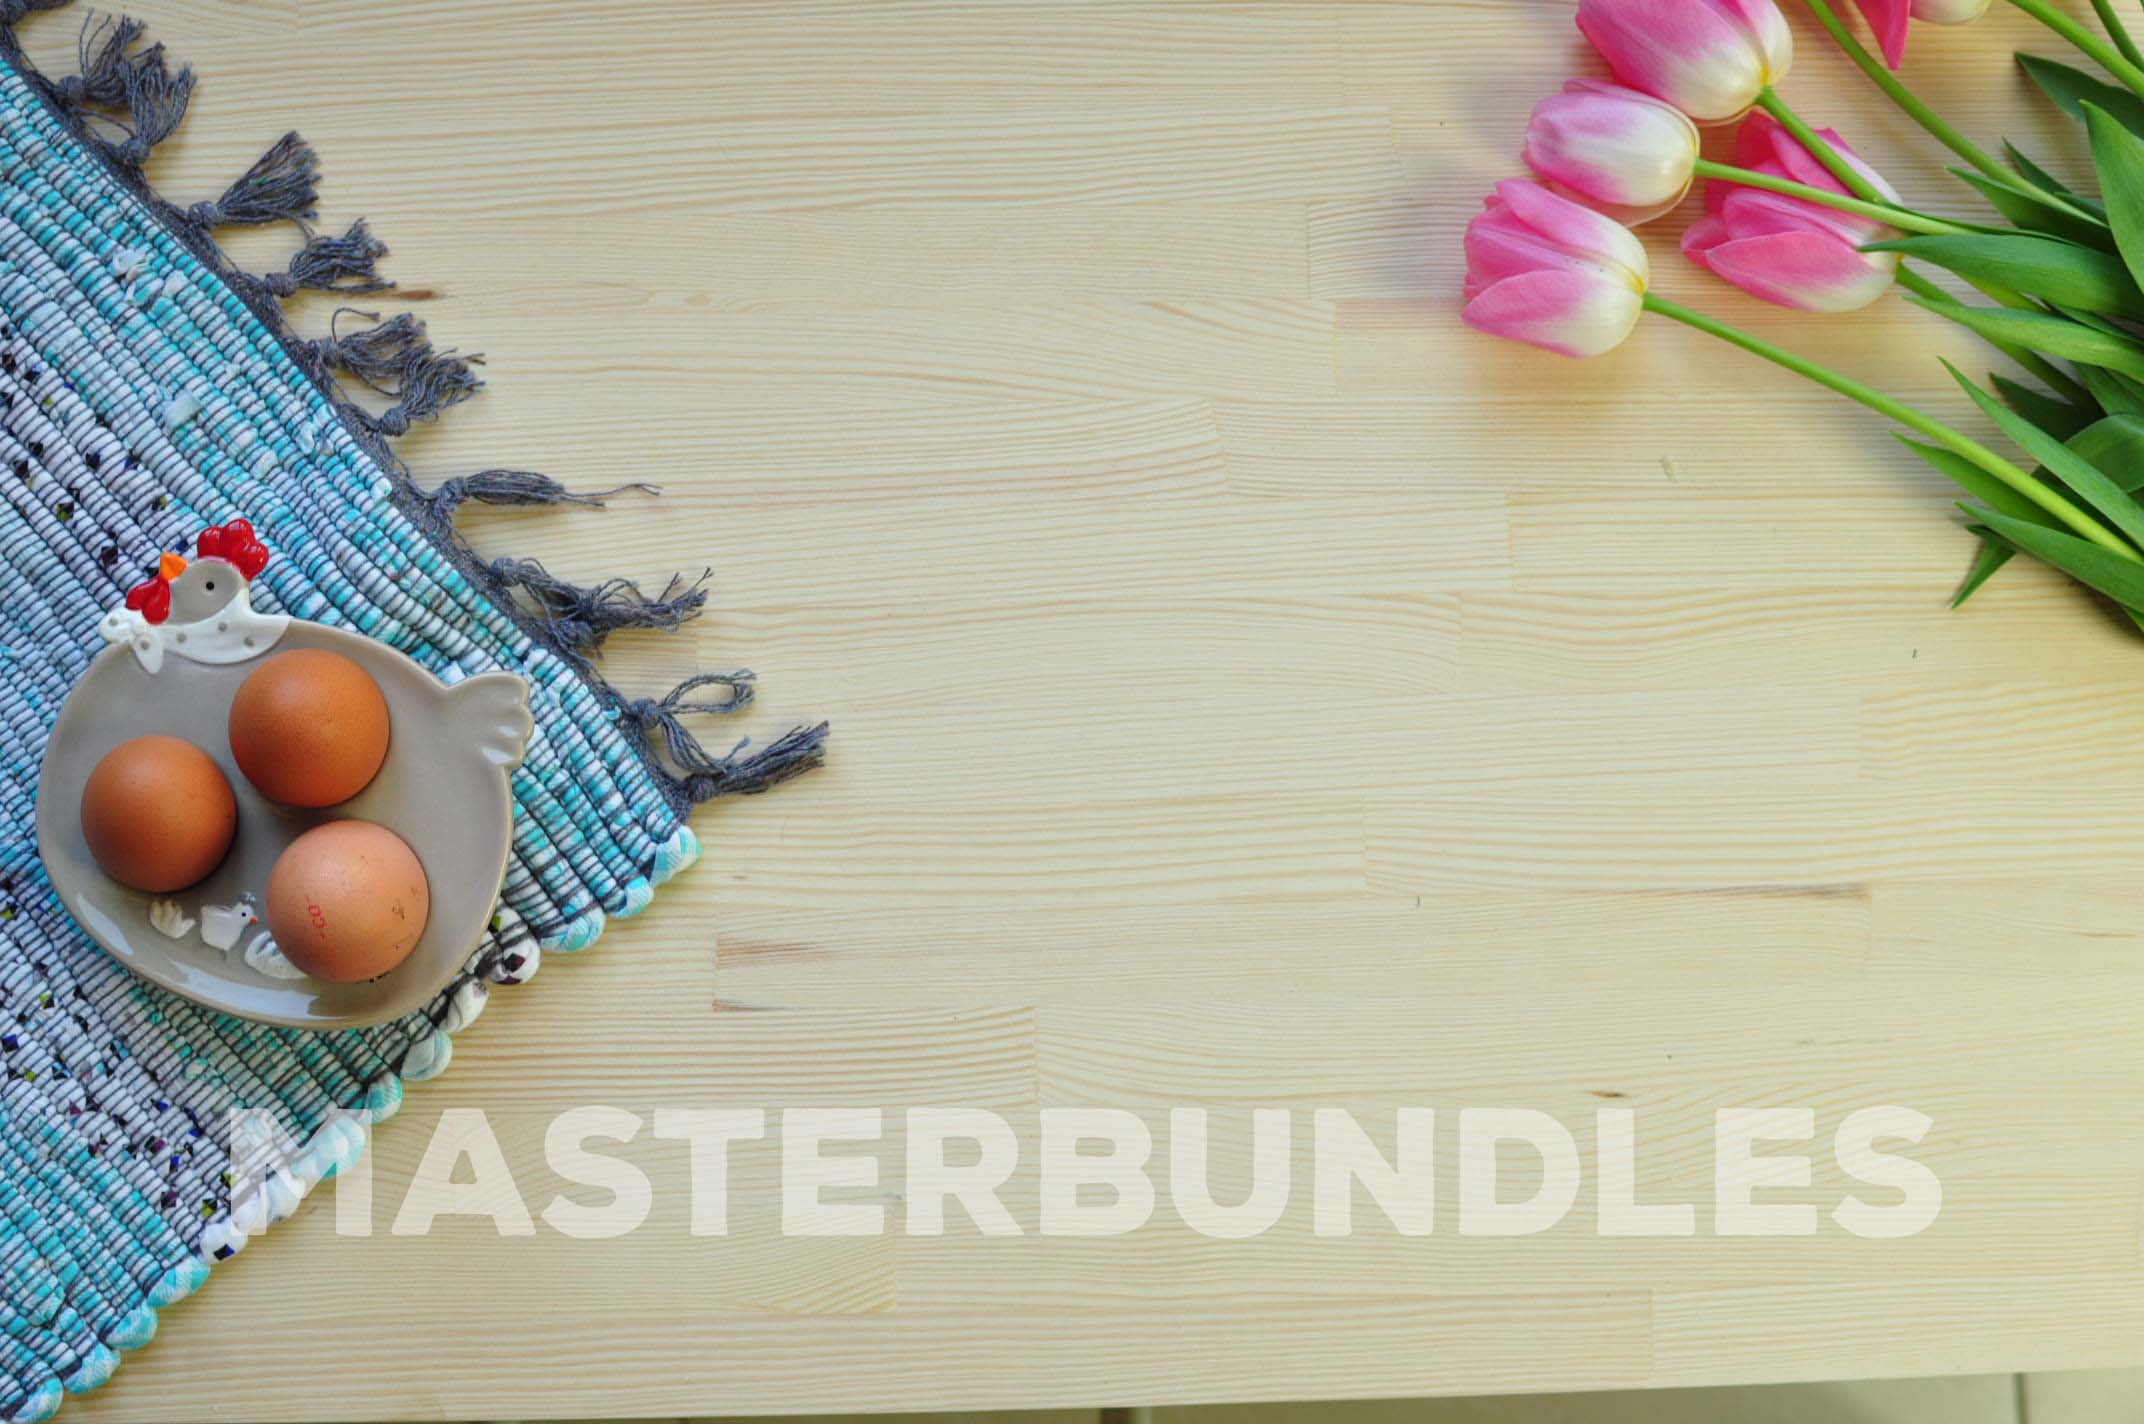 Three chicken eggs in a special stand and on a blue rug with fringes and flowing tulips.